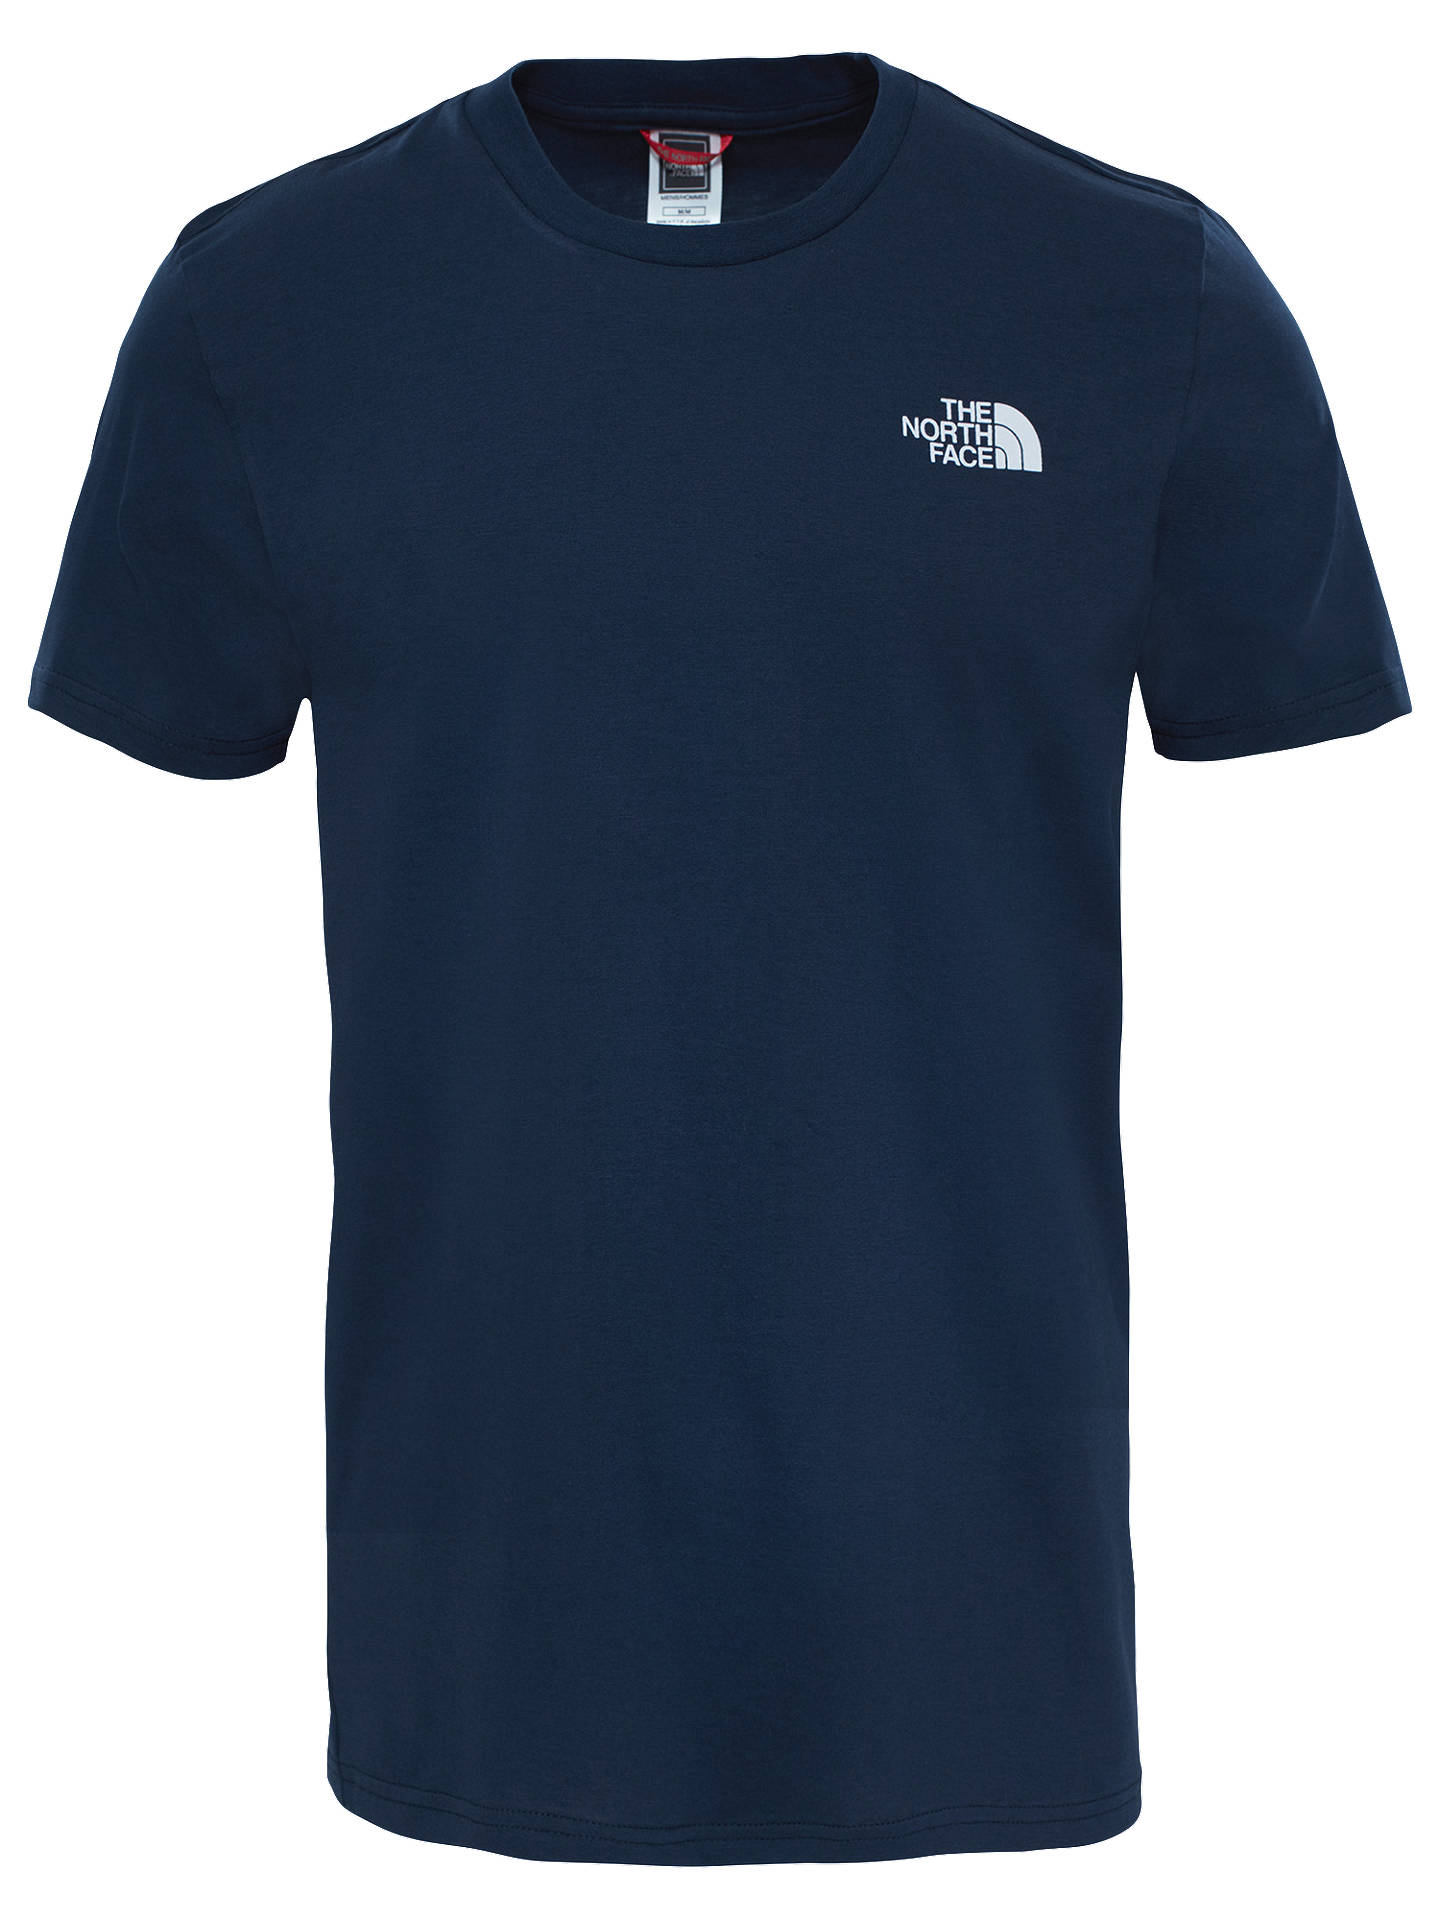 BuyThe North Face Short Sleeve Dome T-Shirt, Urban Navy/White, M Online at johnlewis.com